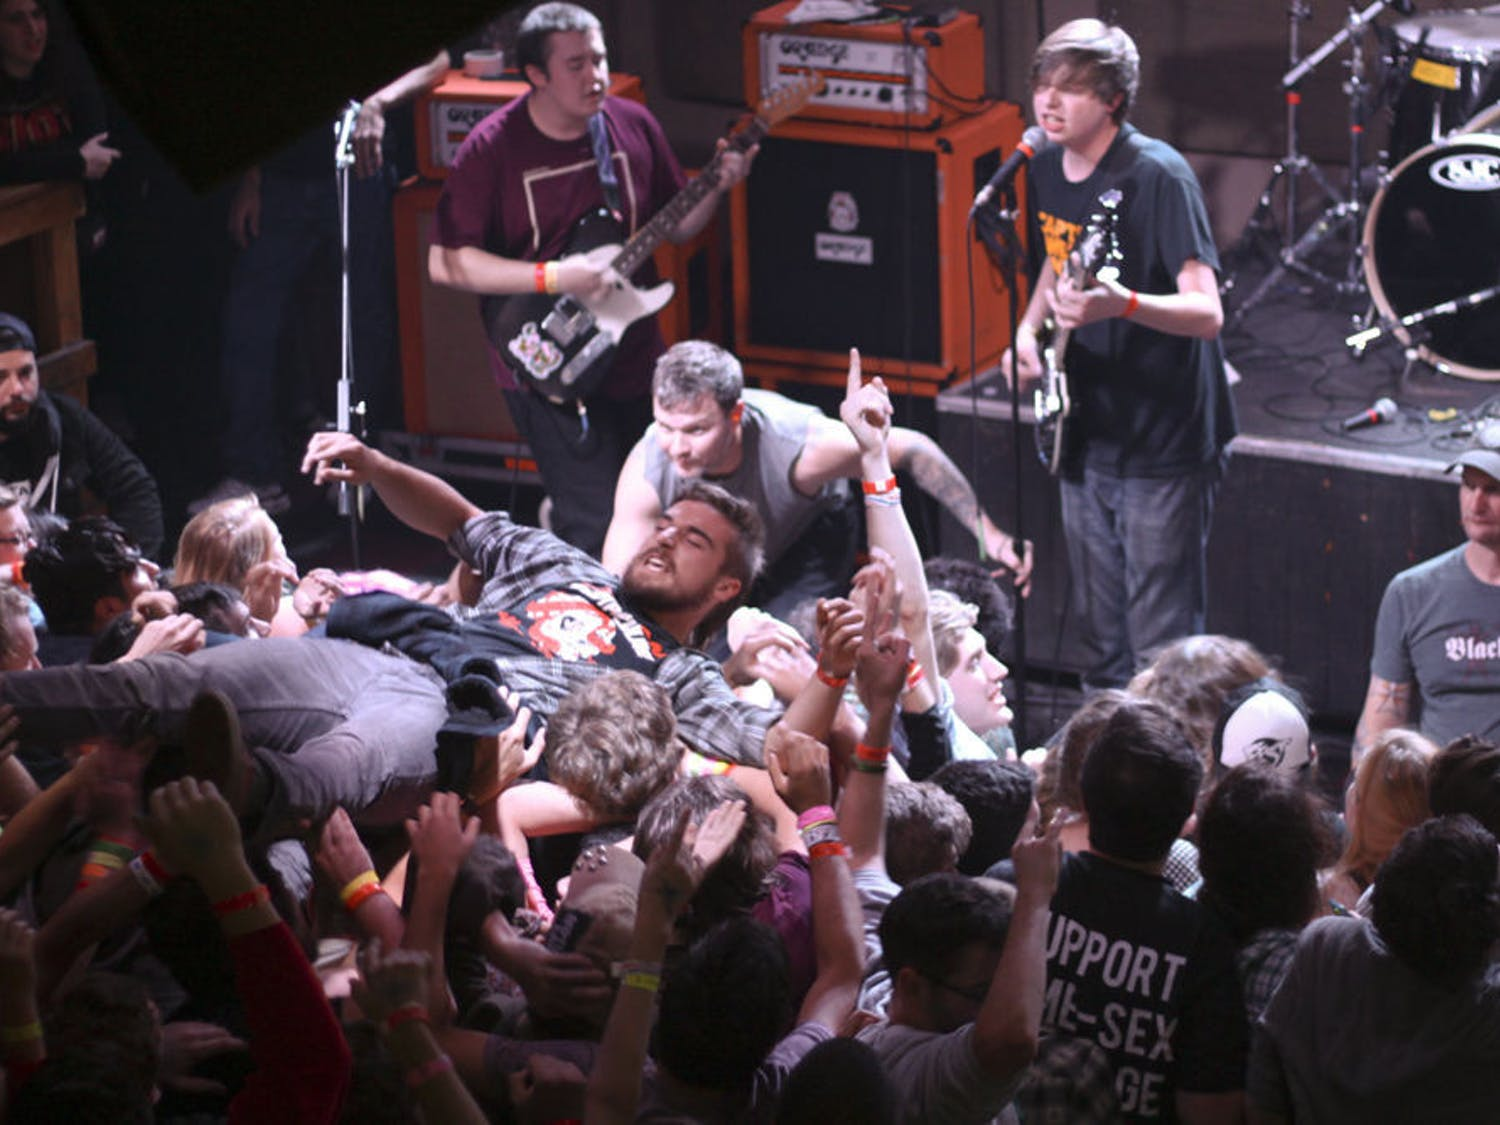 Crowd surfers rolled onto the stage during Modern Baseball's set at :08 on Sunday night.